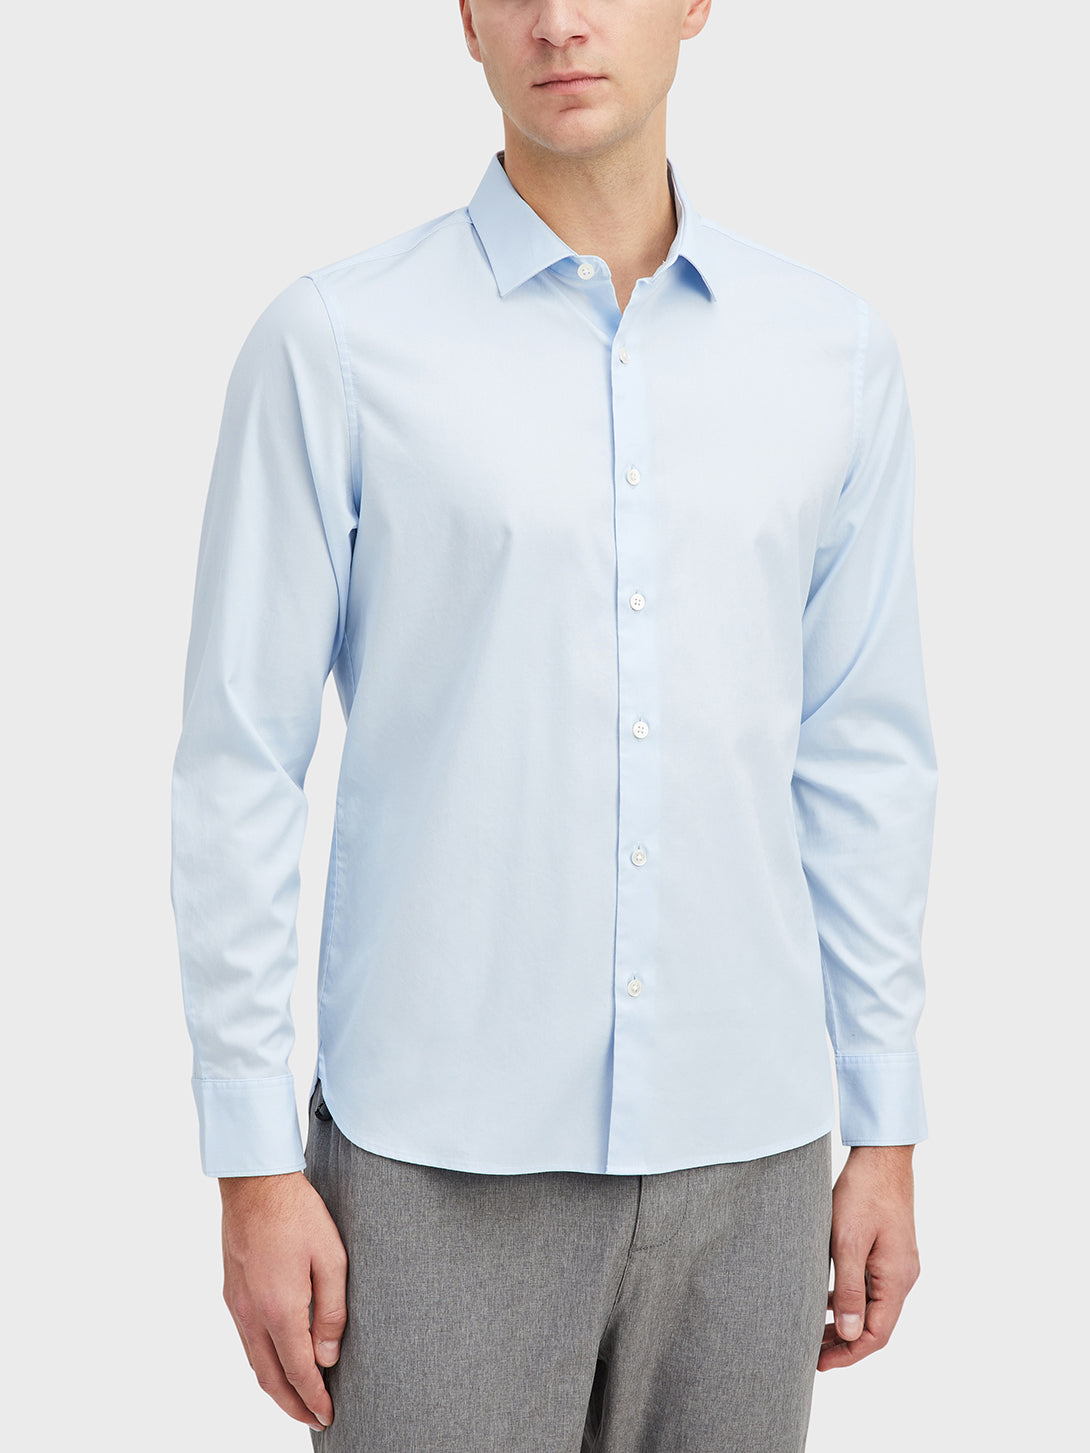 Light Blue Adrian Pinpoint Oxford Shirt Men's cotton shirts ONS Clothing